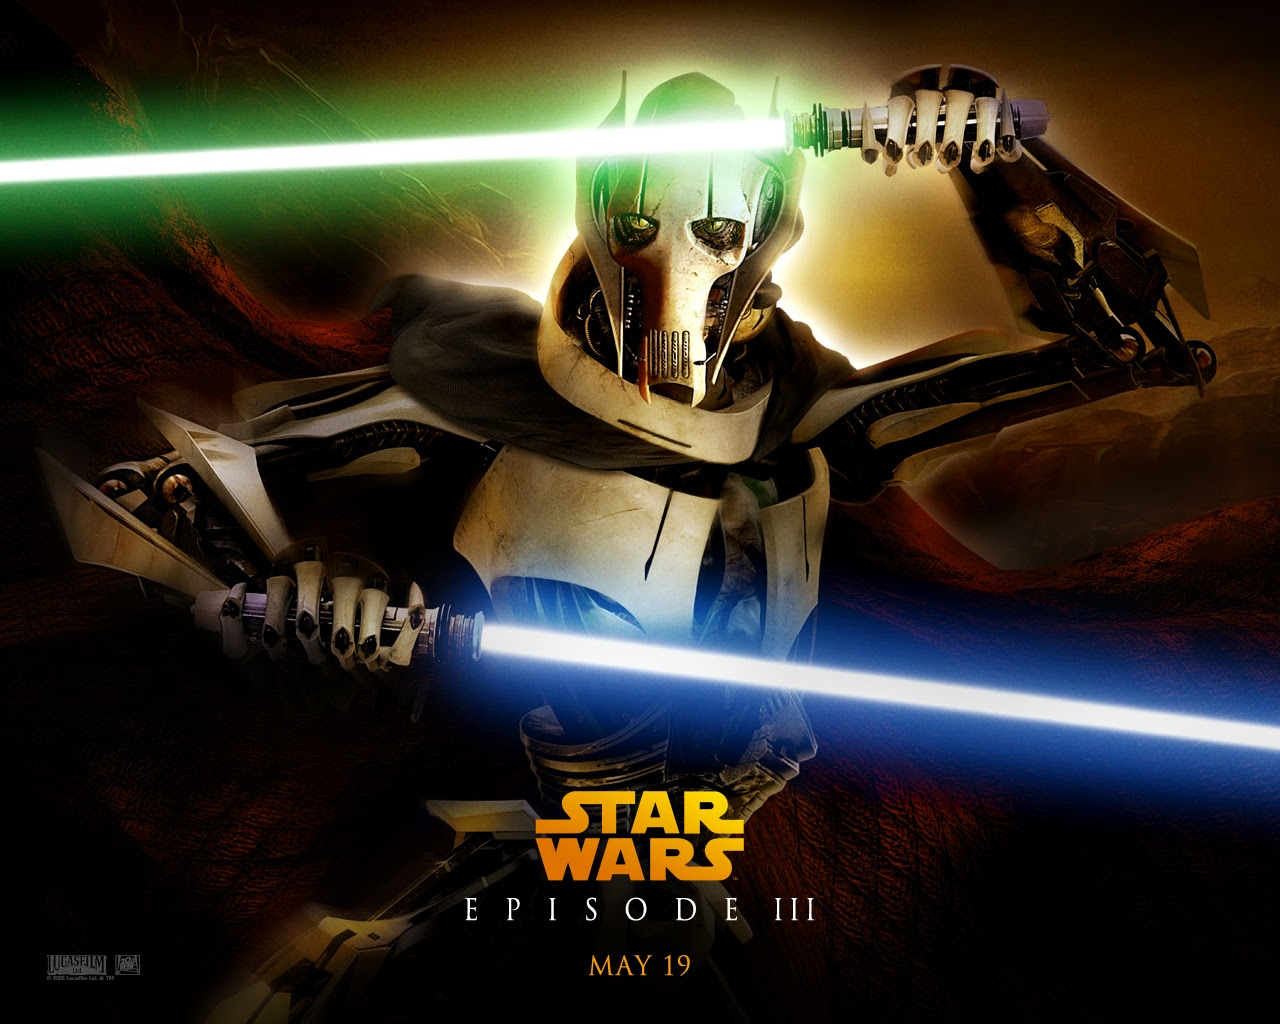 Rots Ep Iii General Grievous Star Wars Revenge Of The Sith